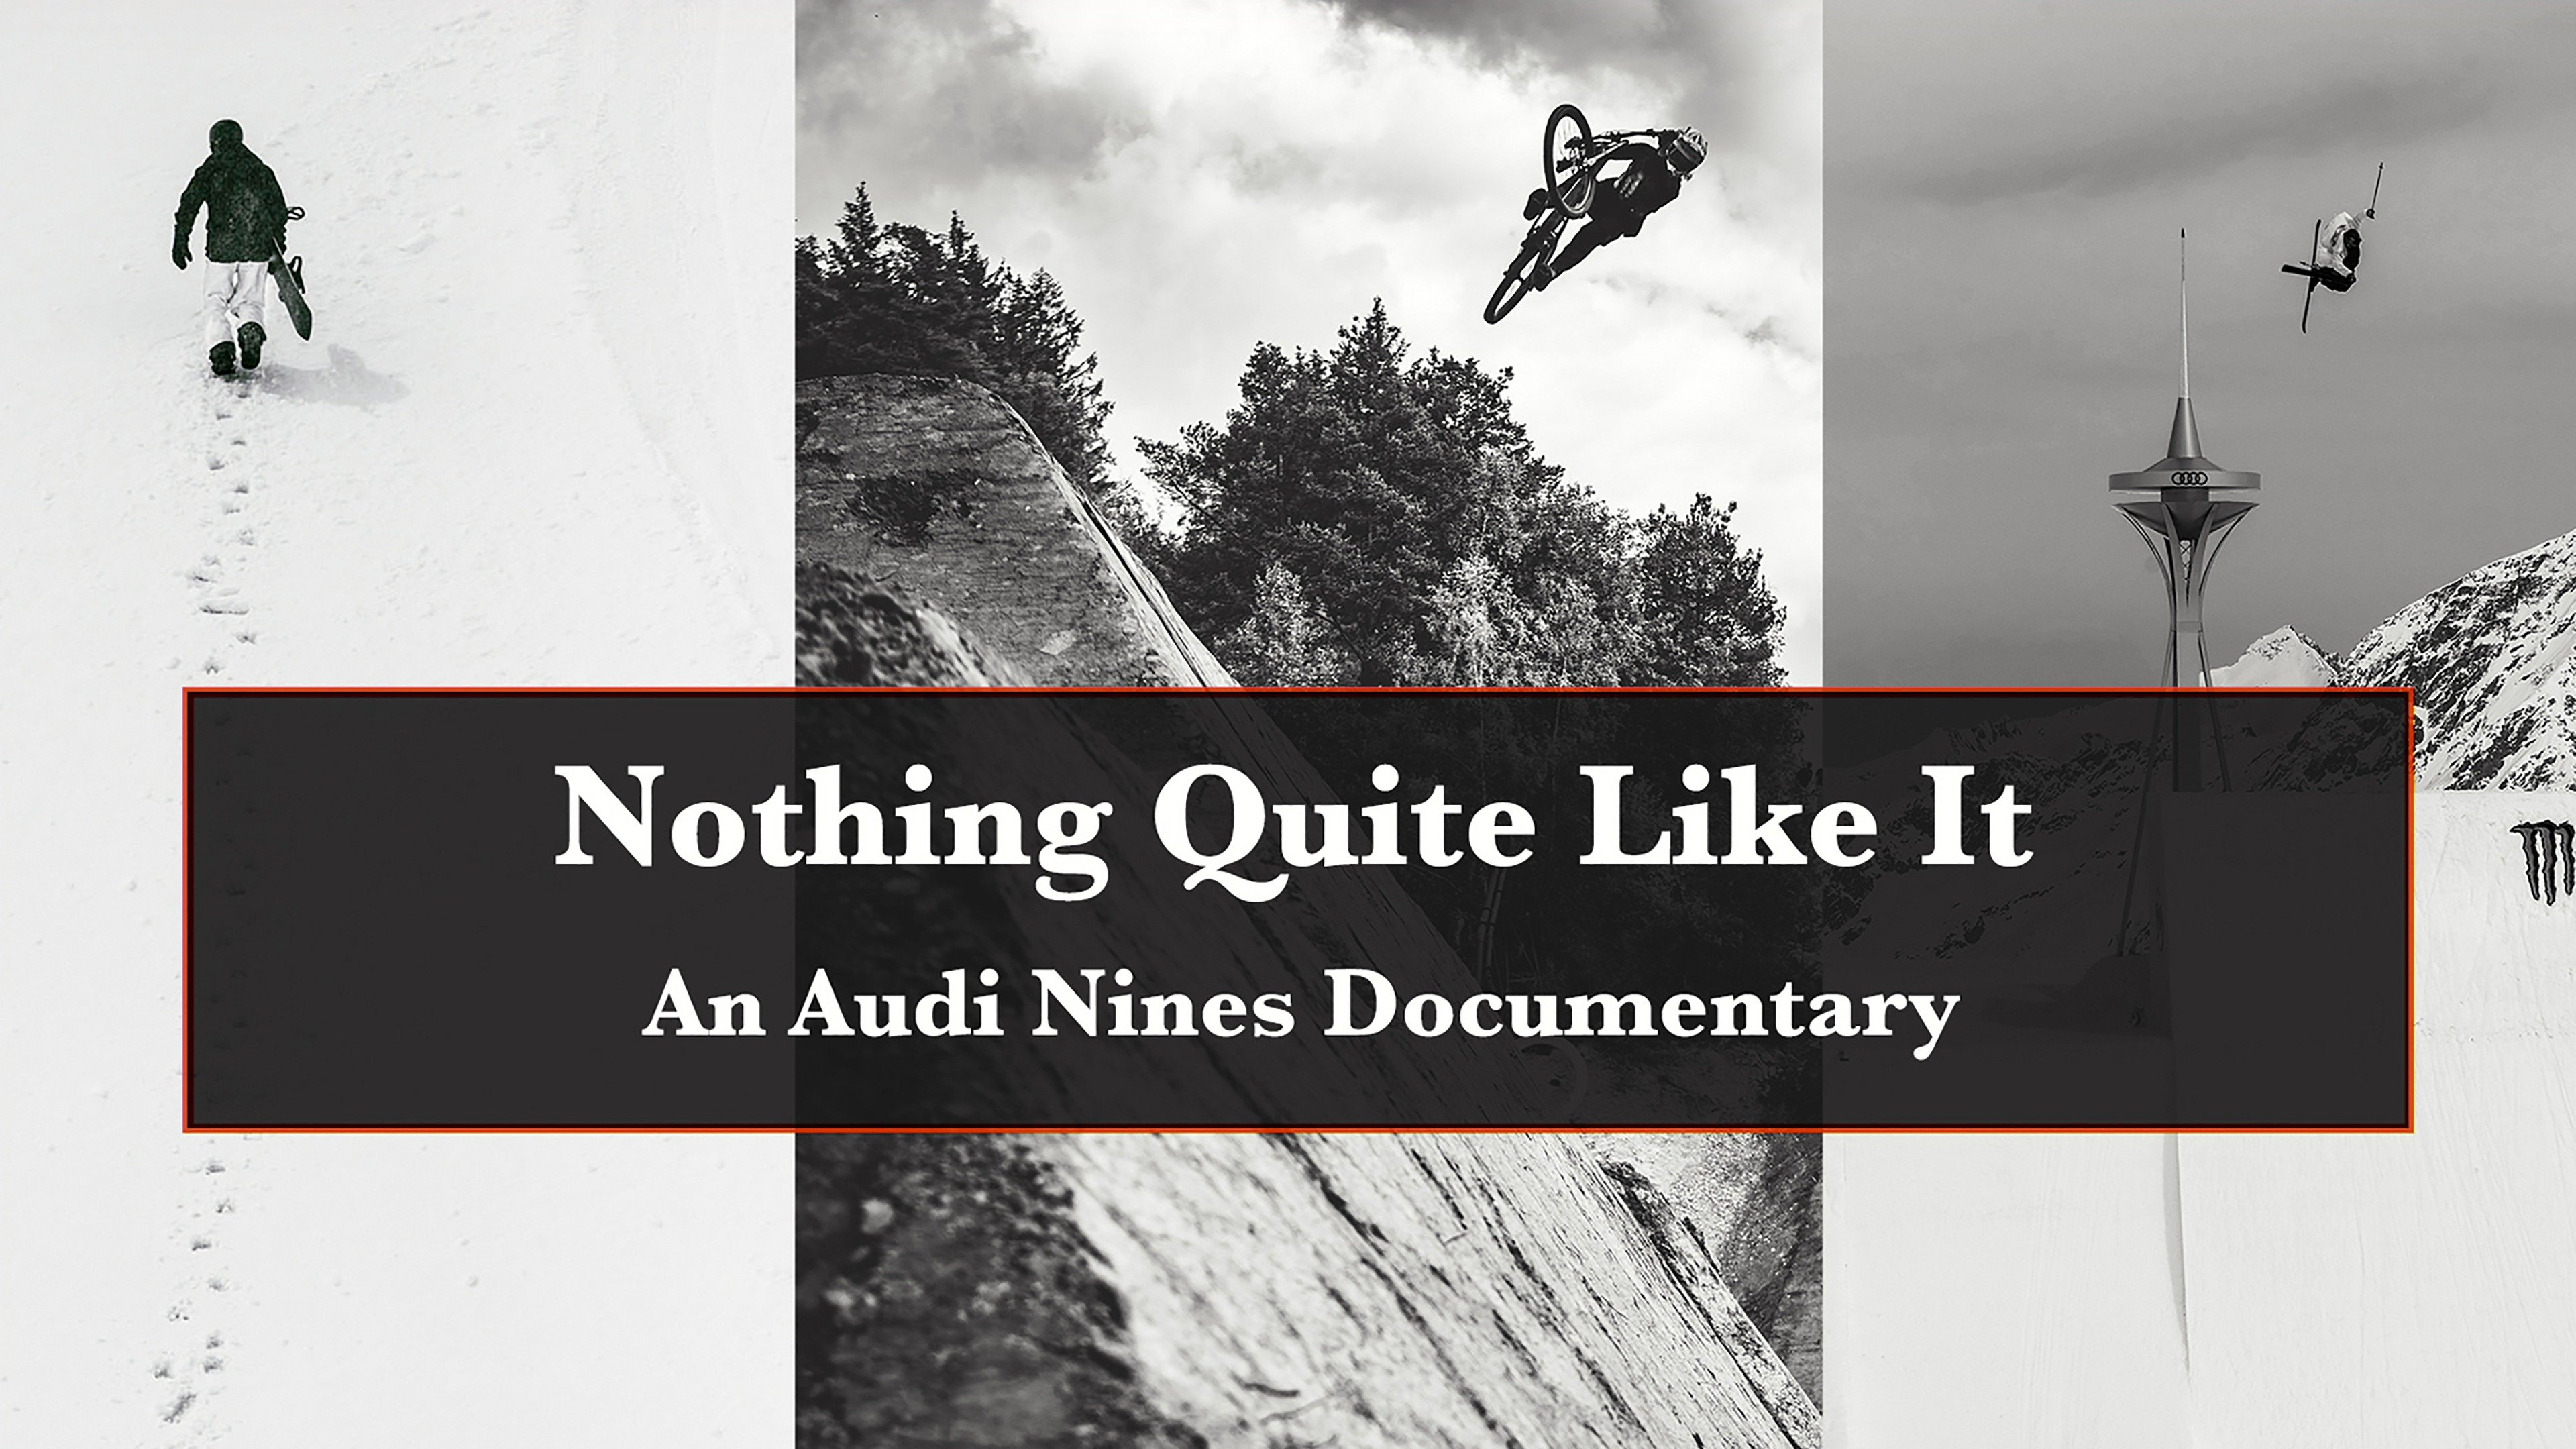 Audi Nines: Nothing Quite Like It